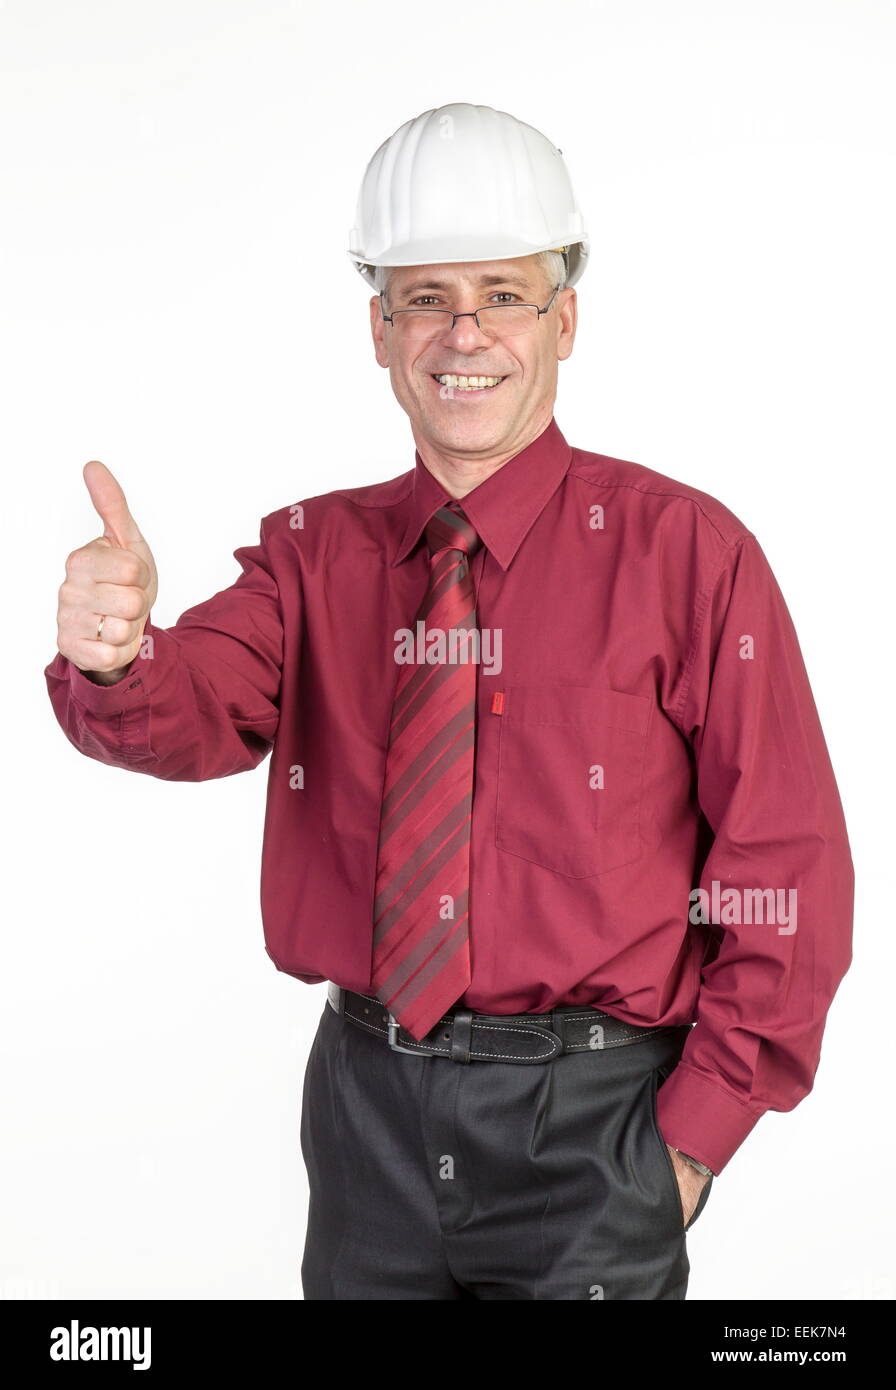 Architekt mit Helm hält Daumen hoch, Architekt with safety-helmet holds up thumb - Stock Image